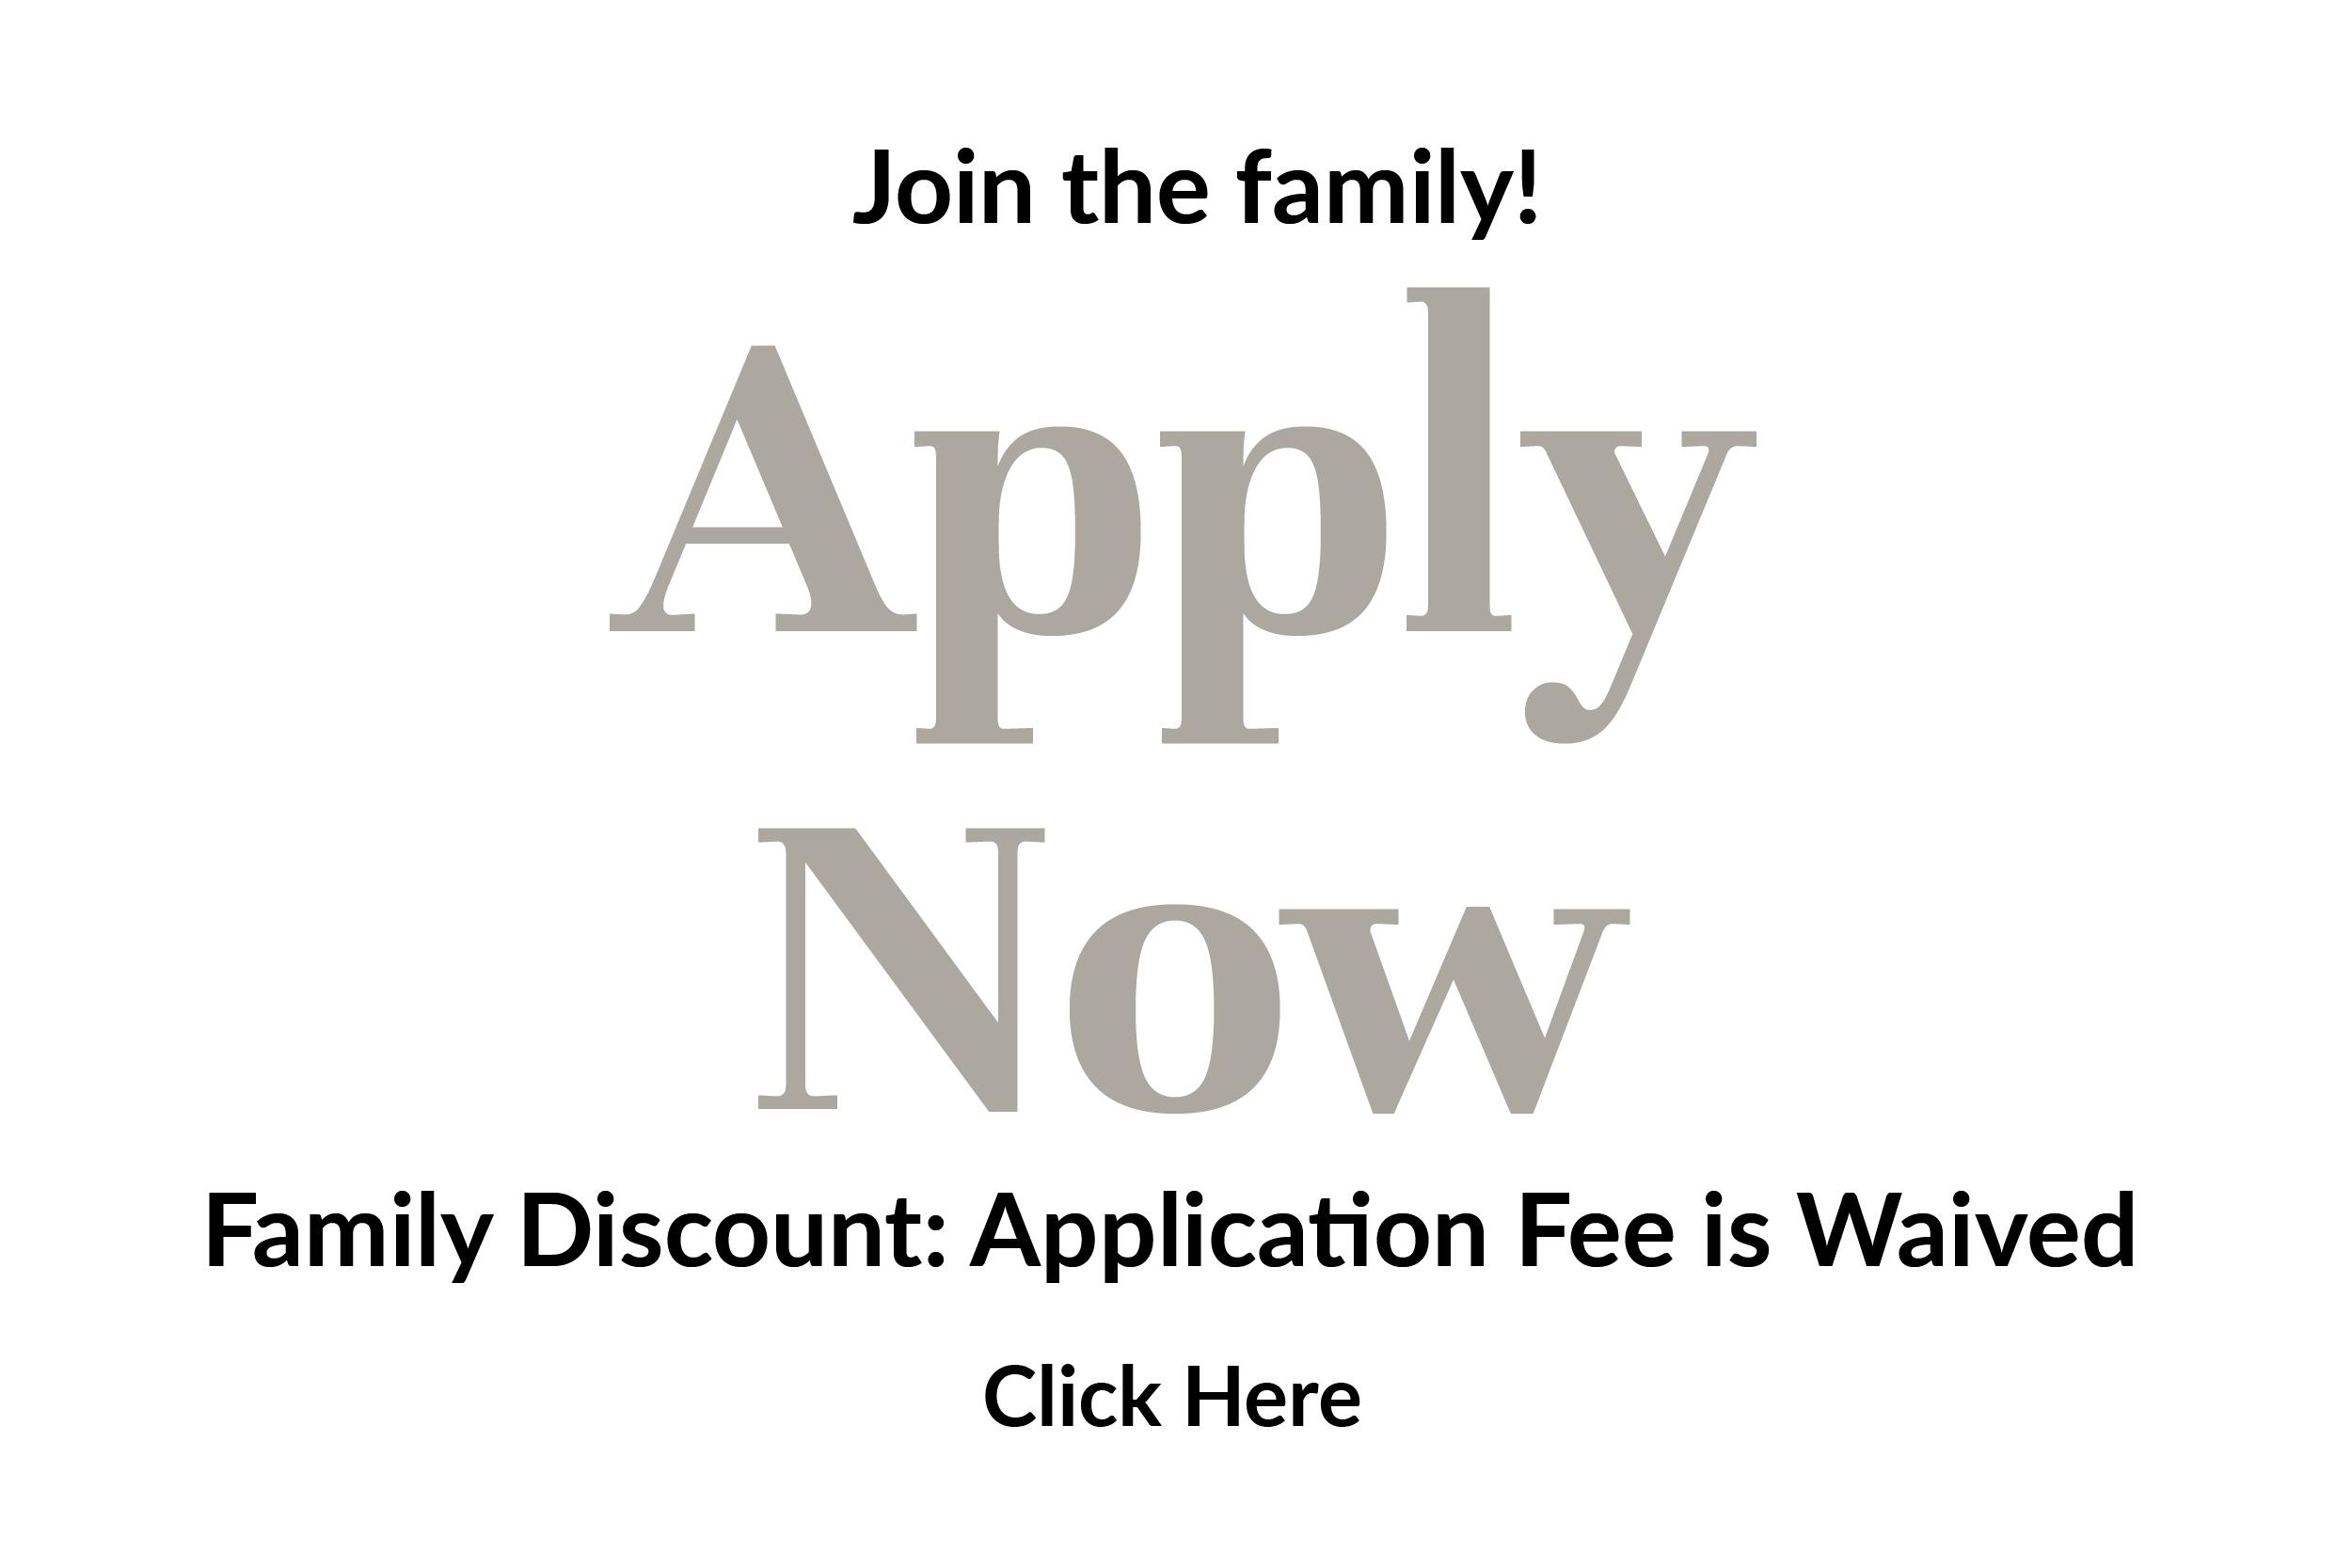 Join the family! Apply Now! Family Discount: Application Fee is Waived